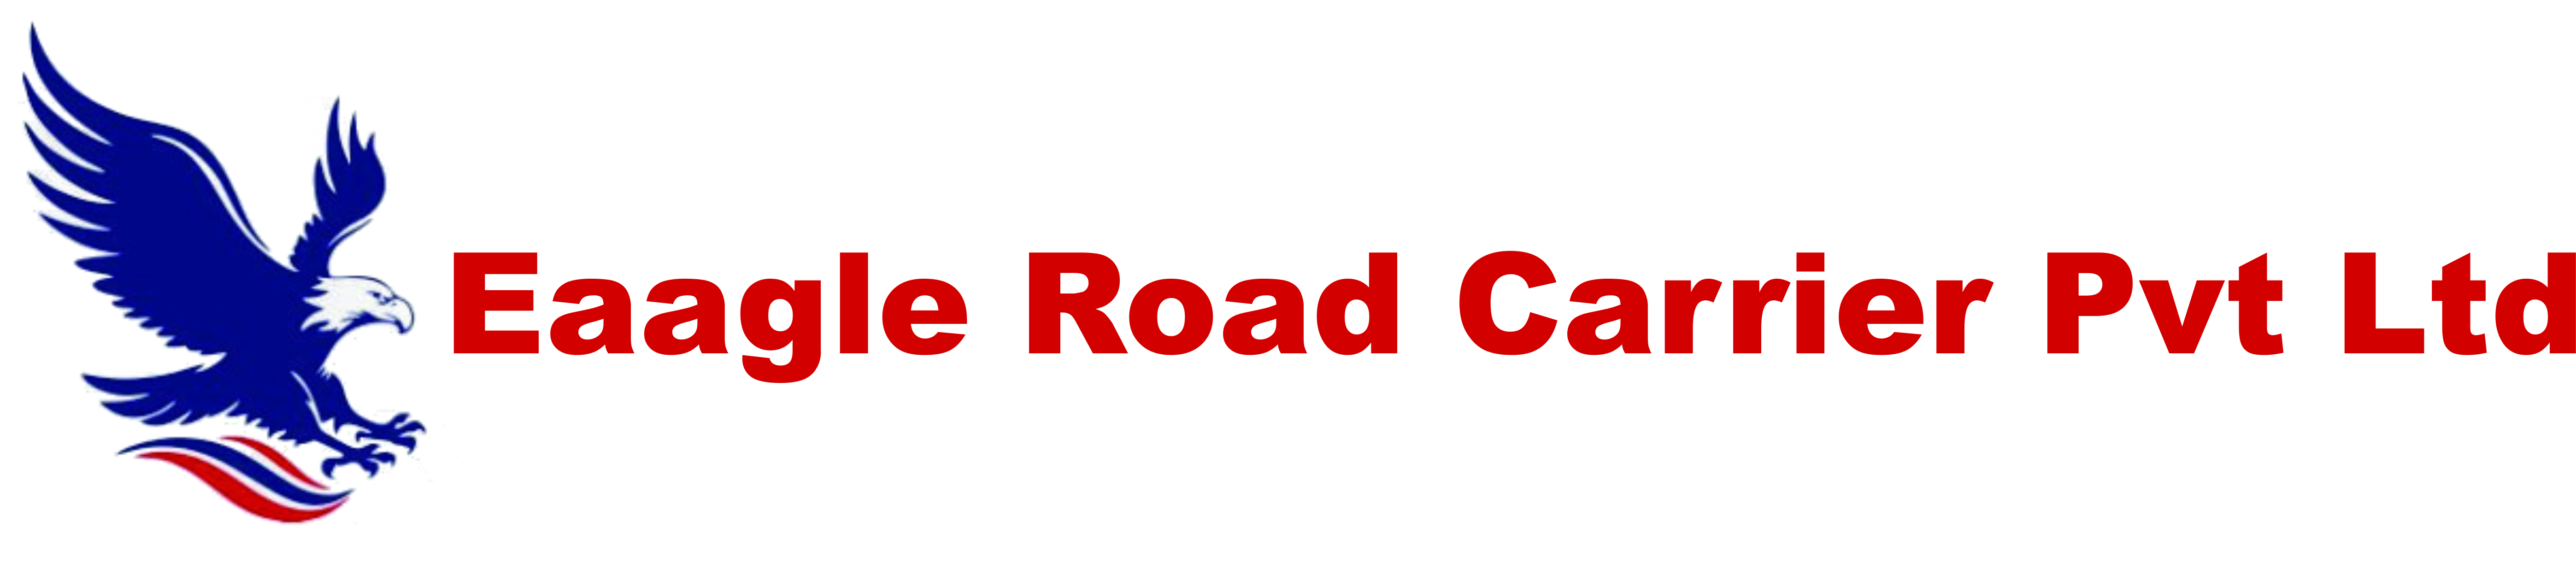 Eaagle Road Carrier Pvt.Ltd